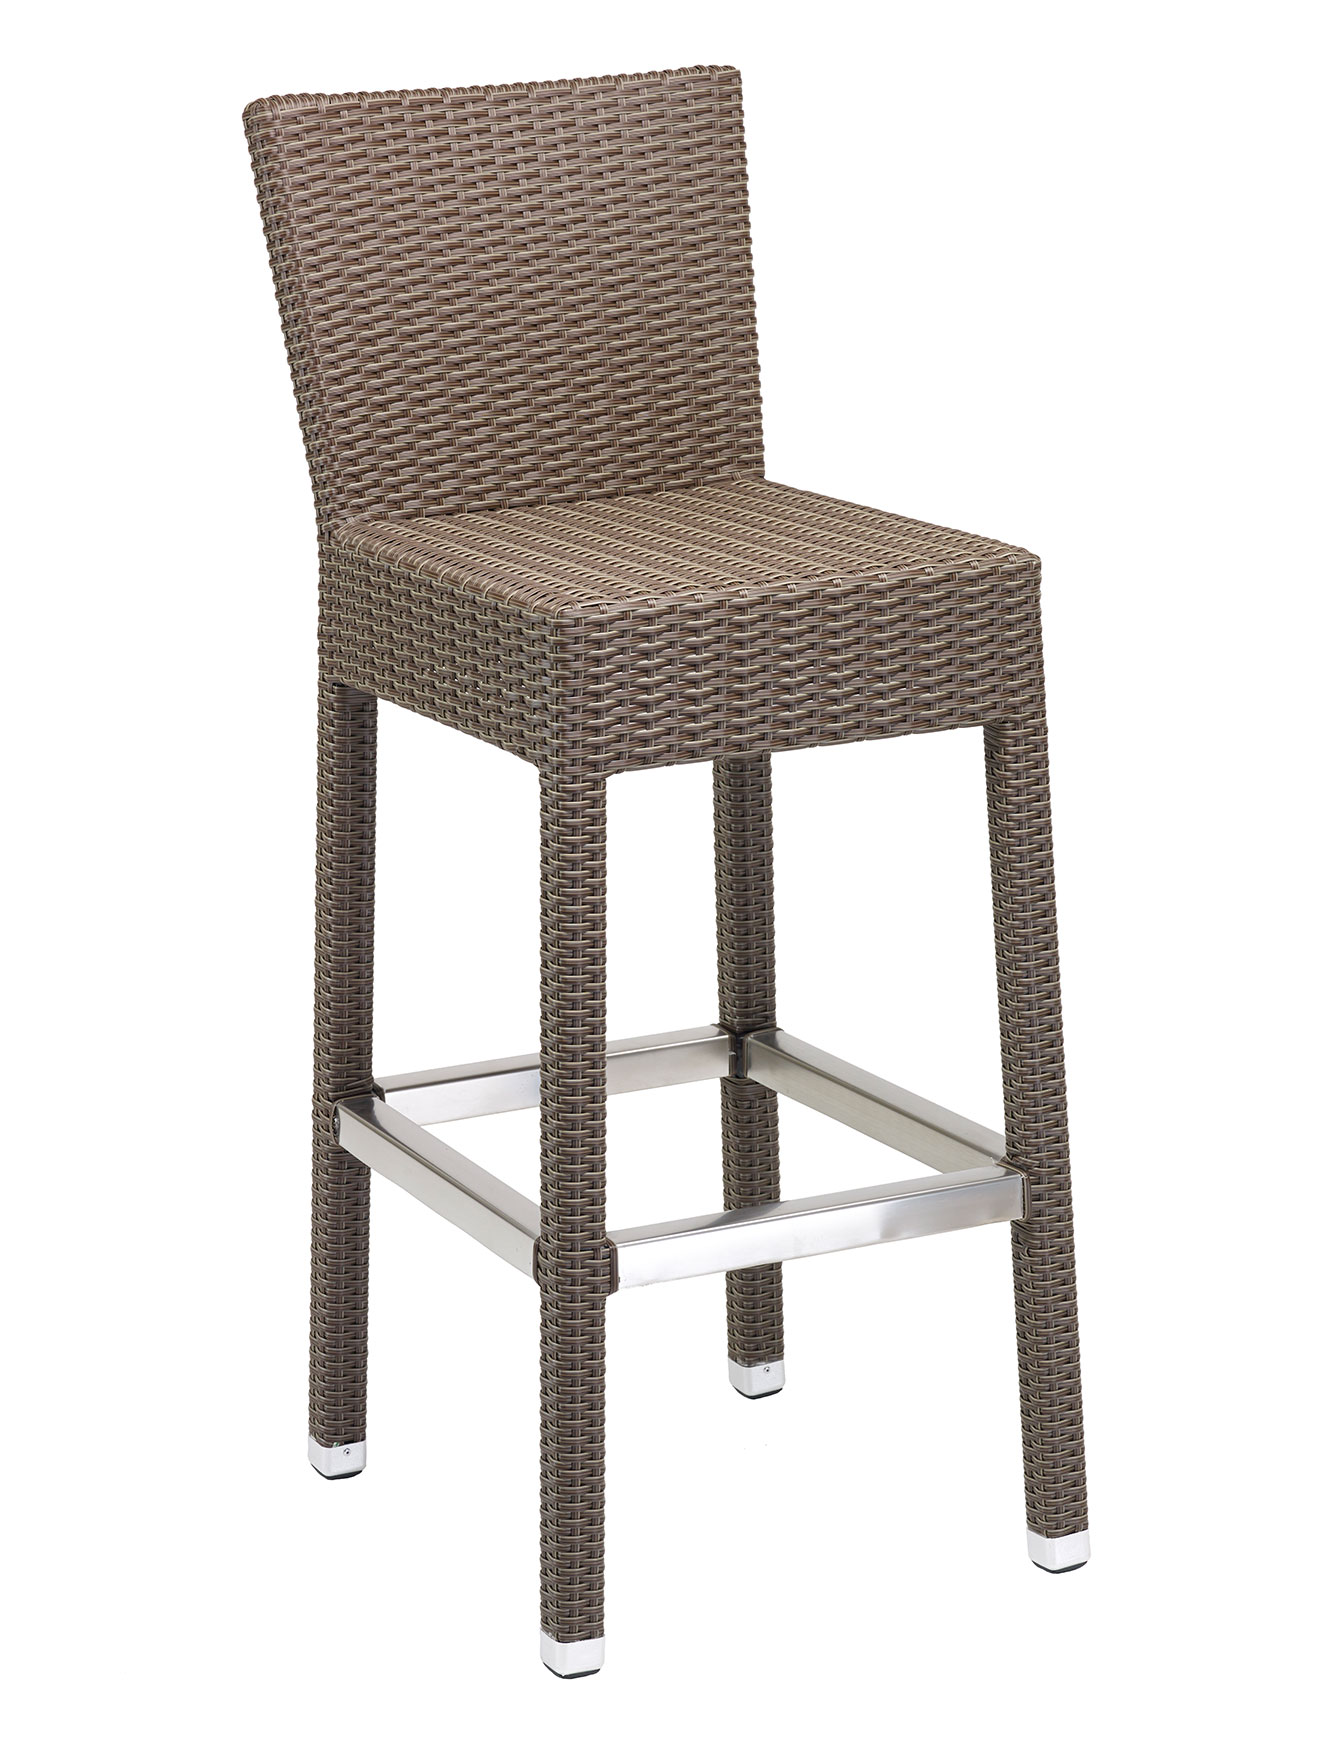 key west chairs kmart camping wicker bar stool sw07b commercial restaurant furniture